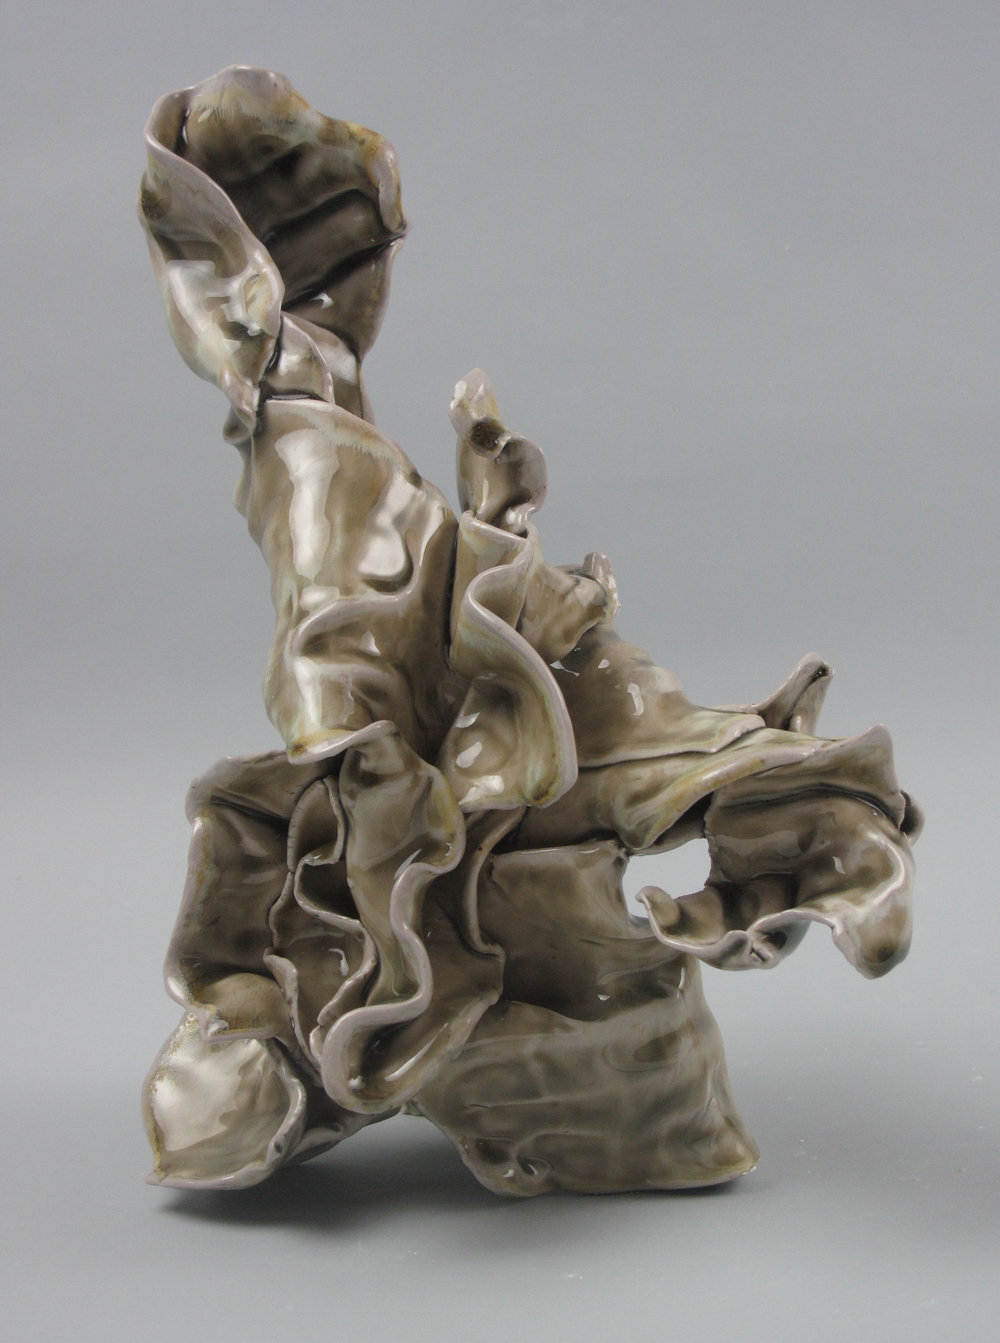 Sara Fine-Wilson,  Carry,  Stoneware, soda-fired, 12x8x6